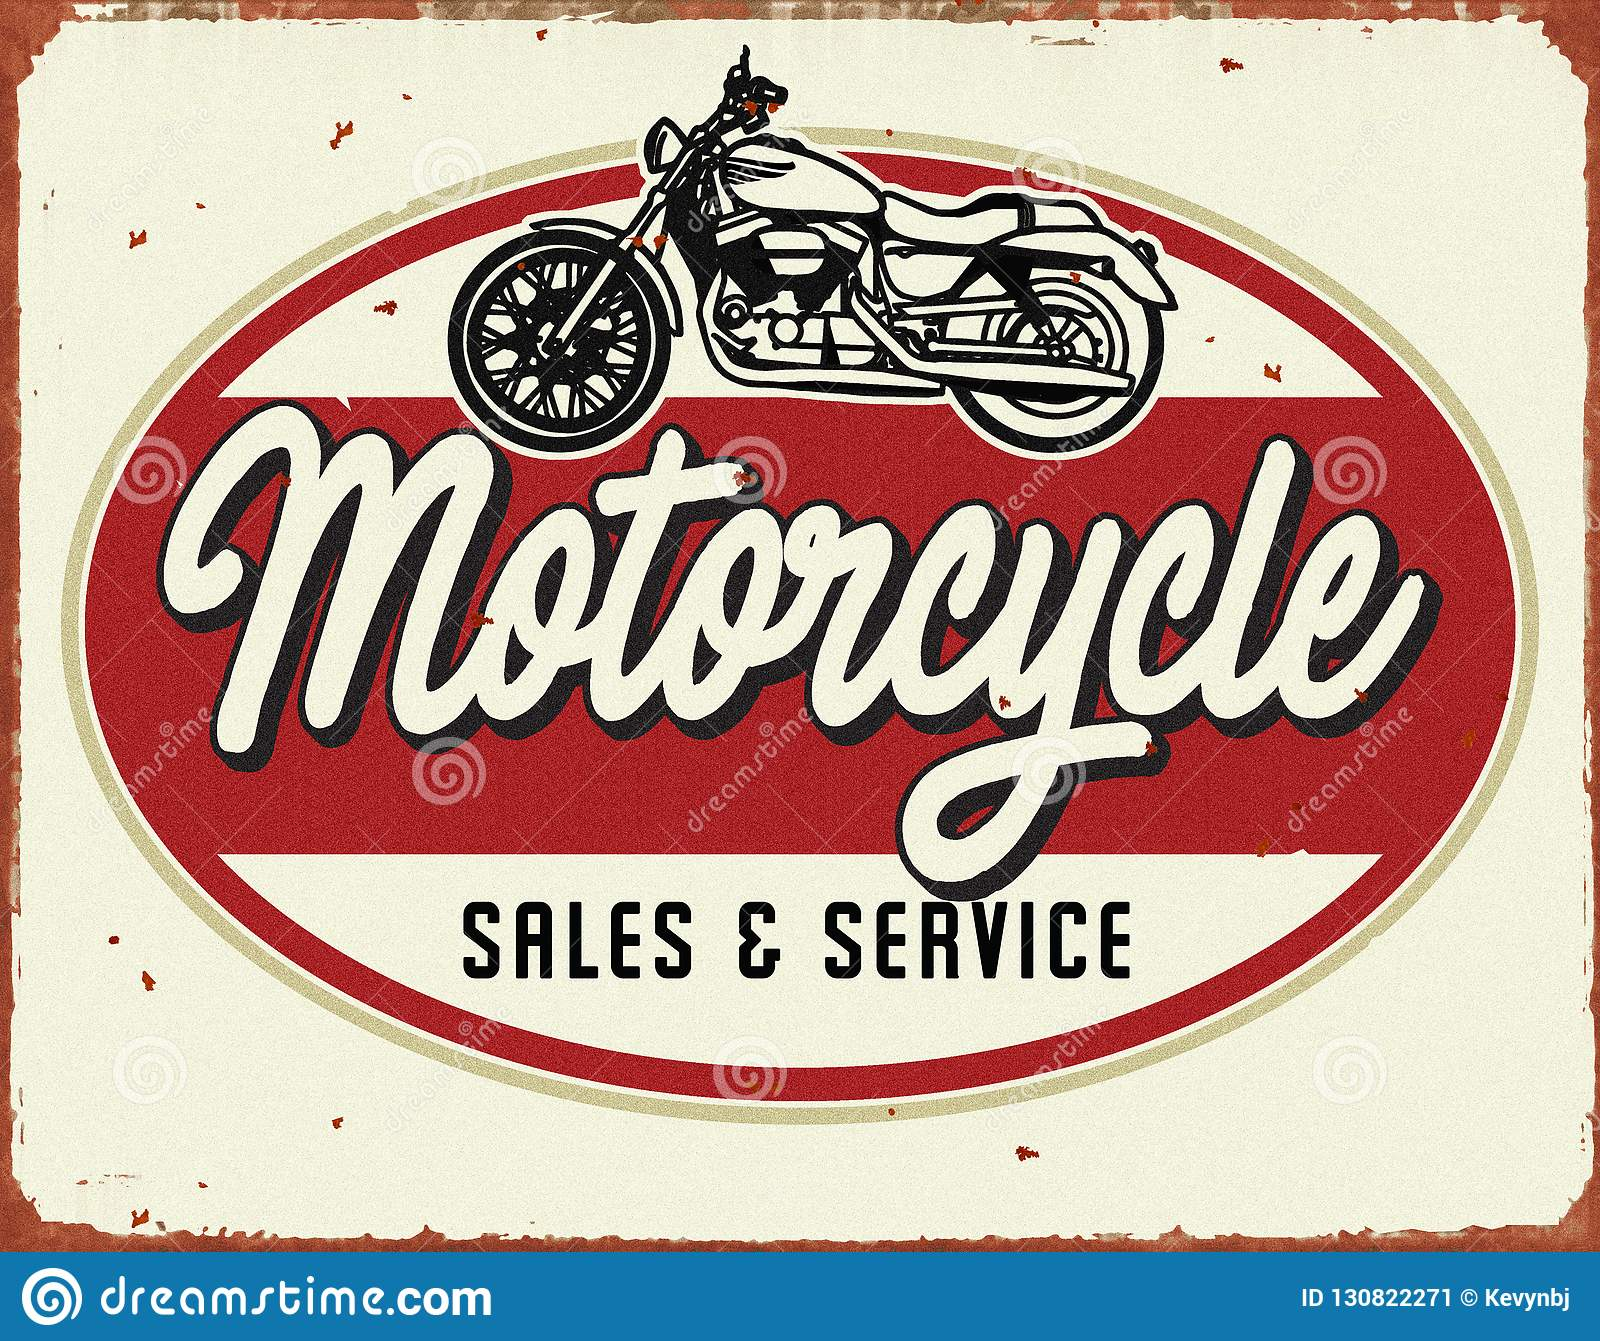 yamaha stock illustrations 60 yamaha stock illustrations vectors clipart dreamstime https www dreamstime com motorcyle service repair vintage tin sign sales metal retro rustic s harley davidson yamaha honda mechanic image130822271